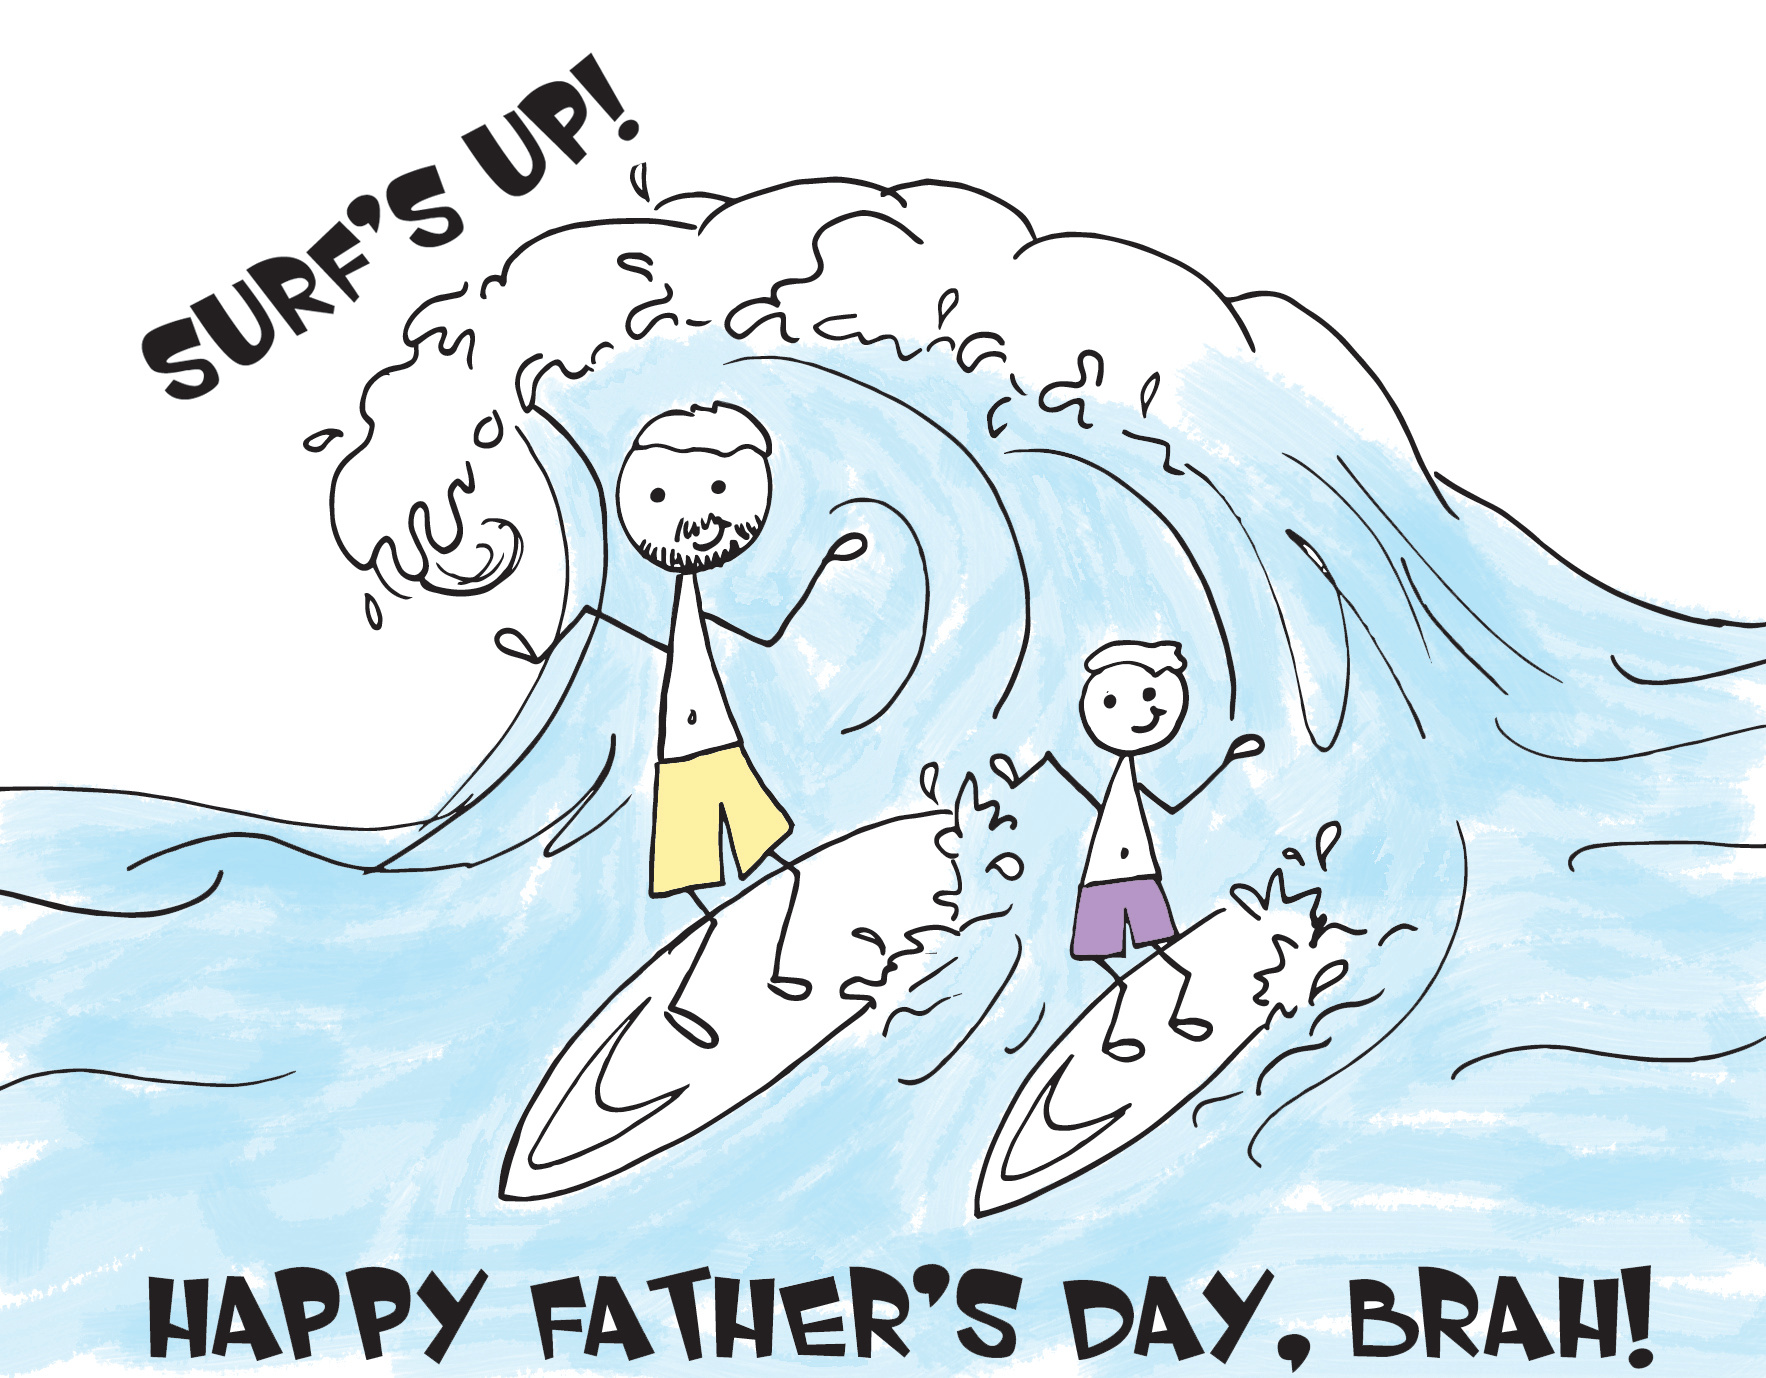 FathersDay_Surfs Up, Dad!